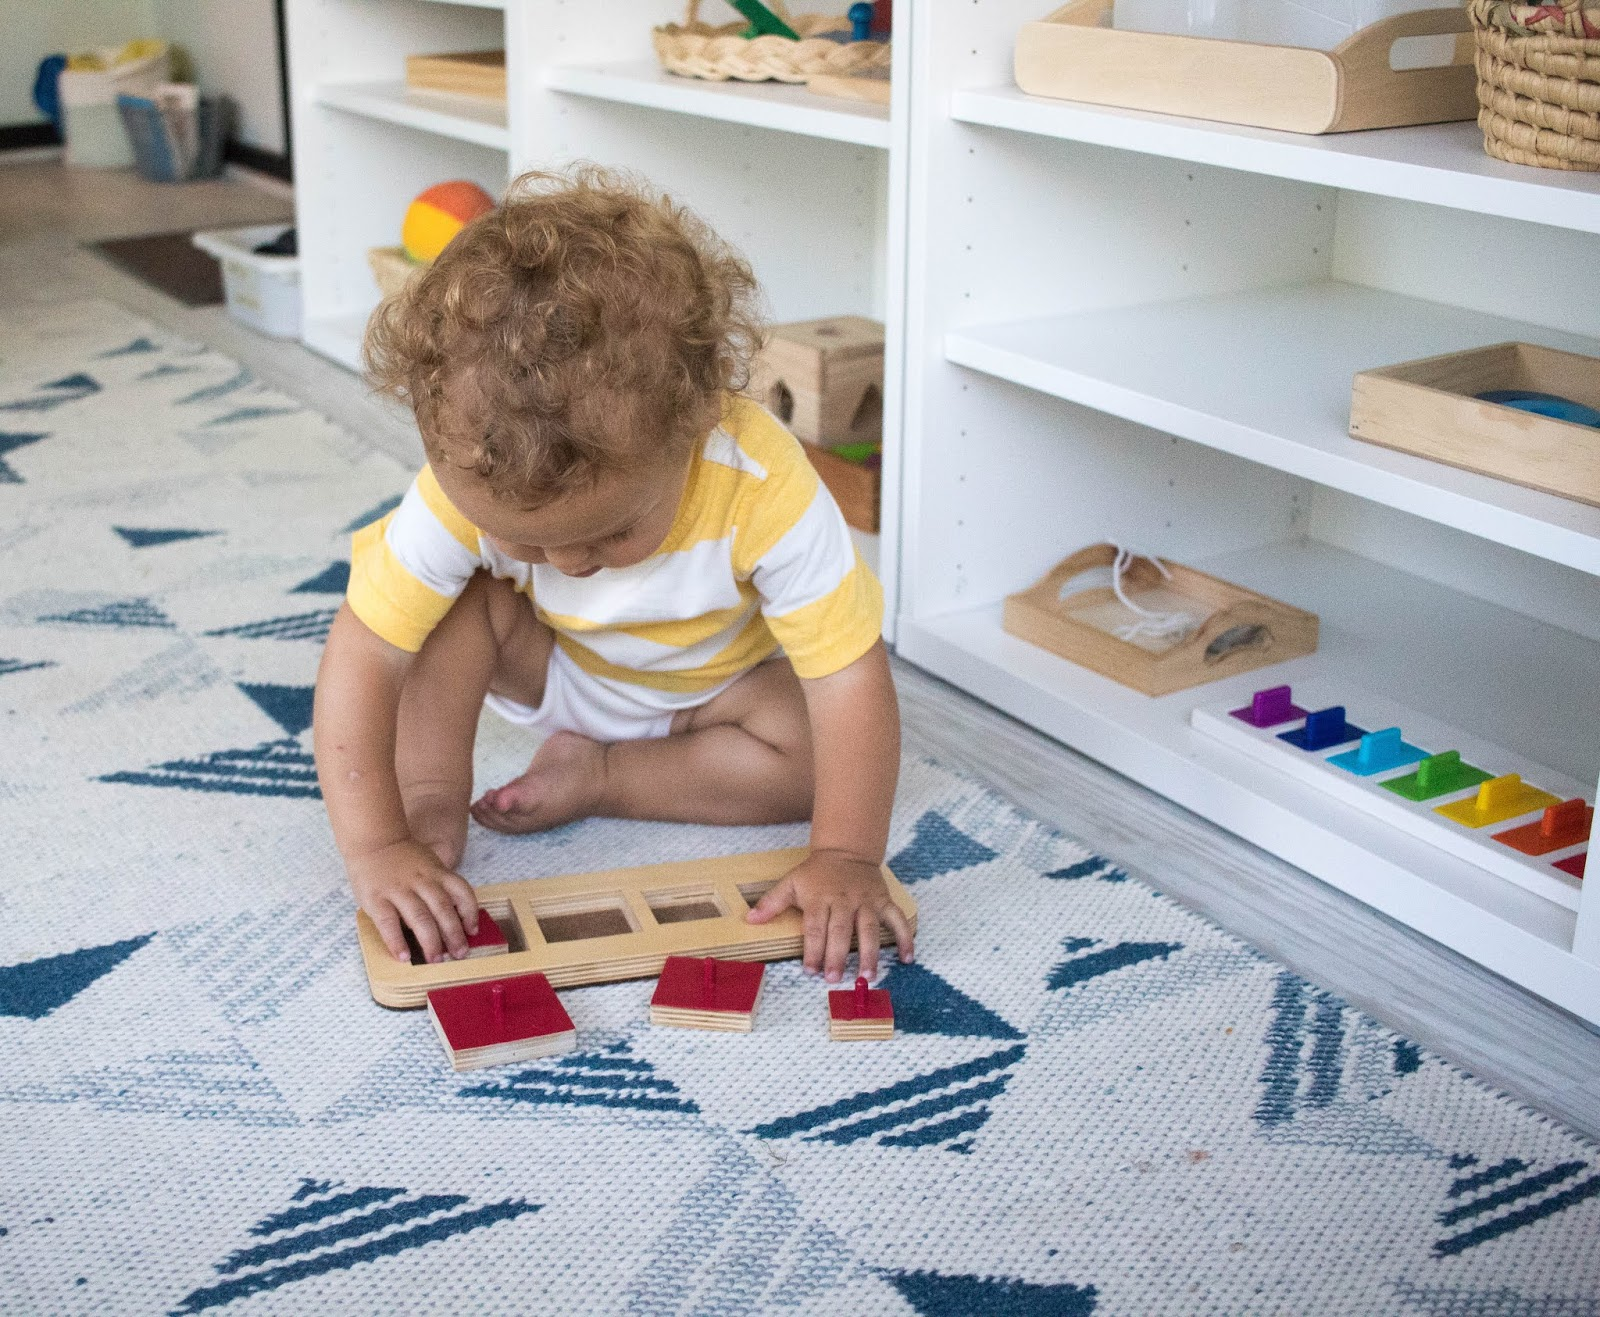 Montessori friendly toddler activities from A to Z.